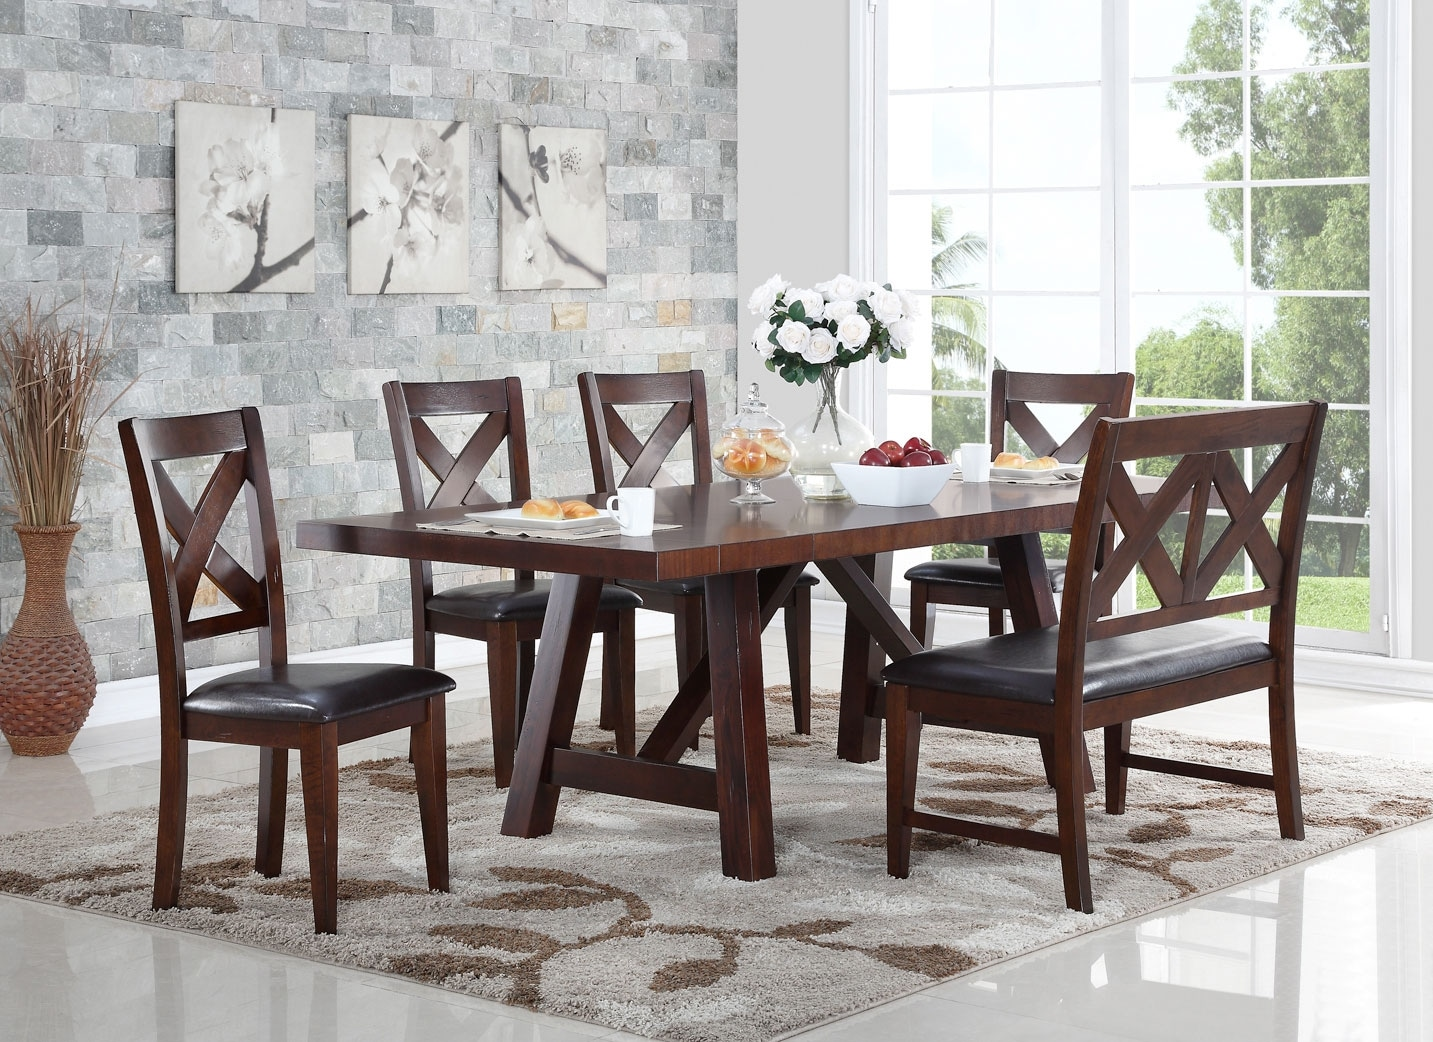 the brick dining room furniture | Adara 6-Piece Dining Package with Cross-Back Chairs | The ...